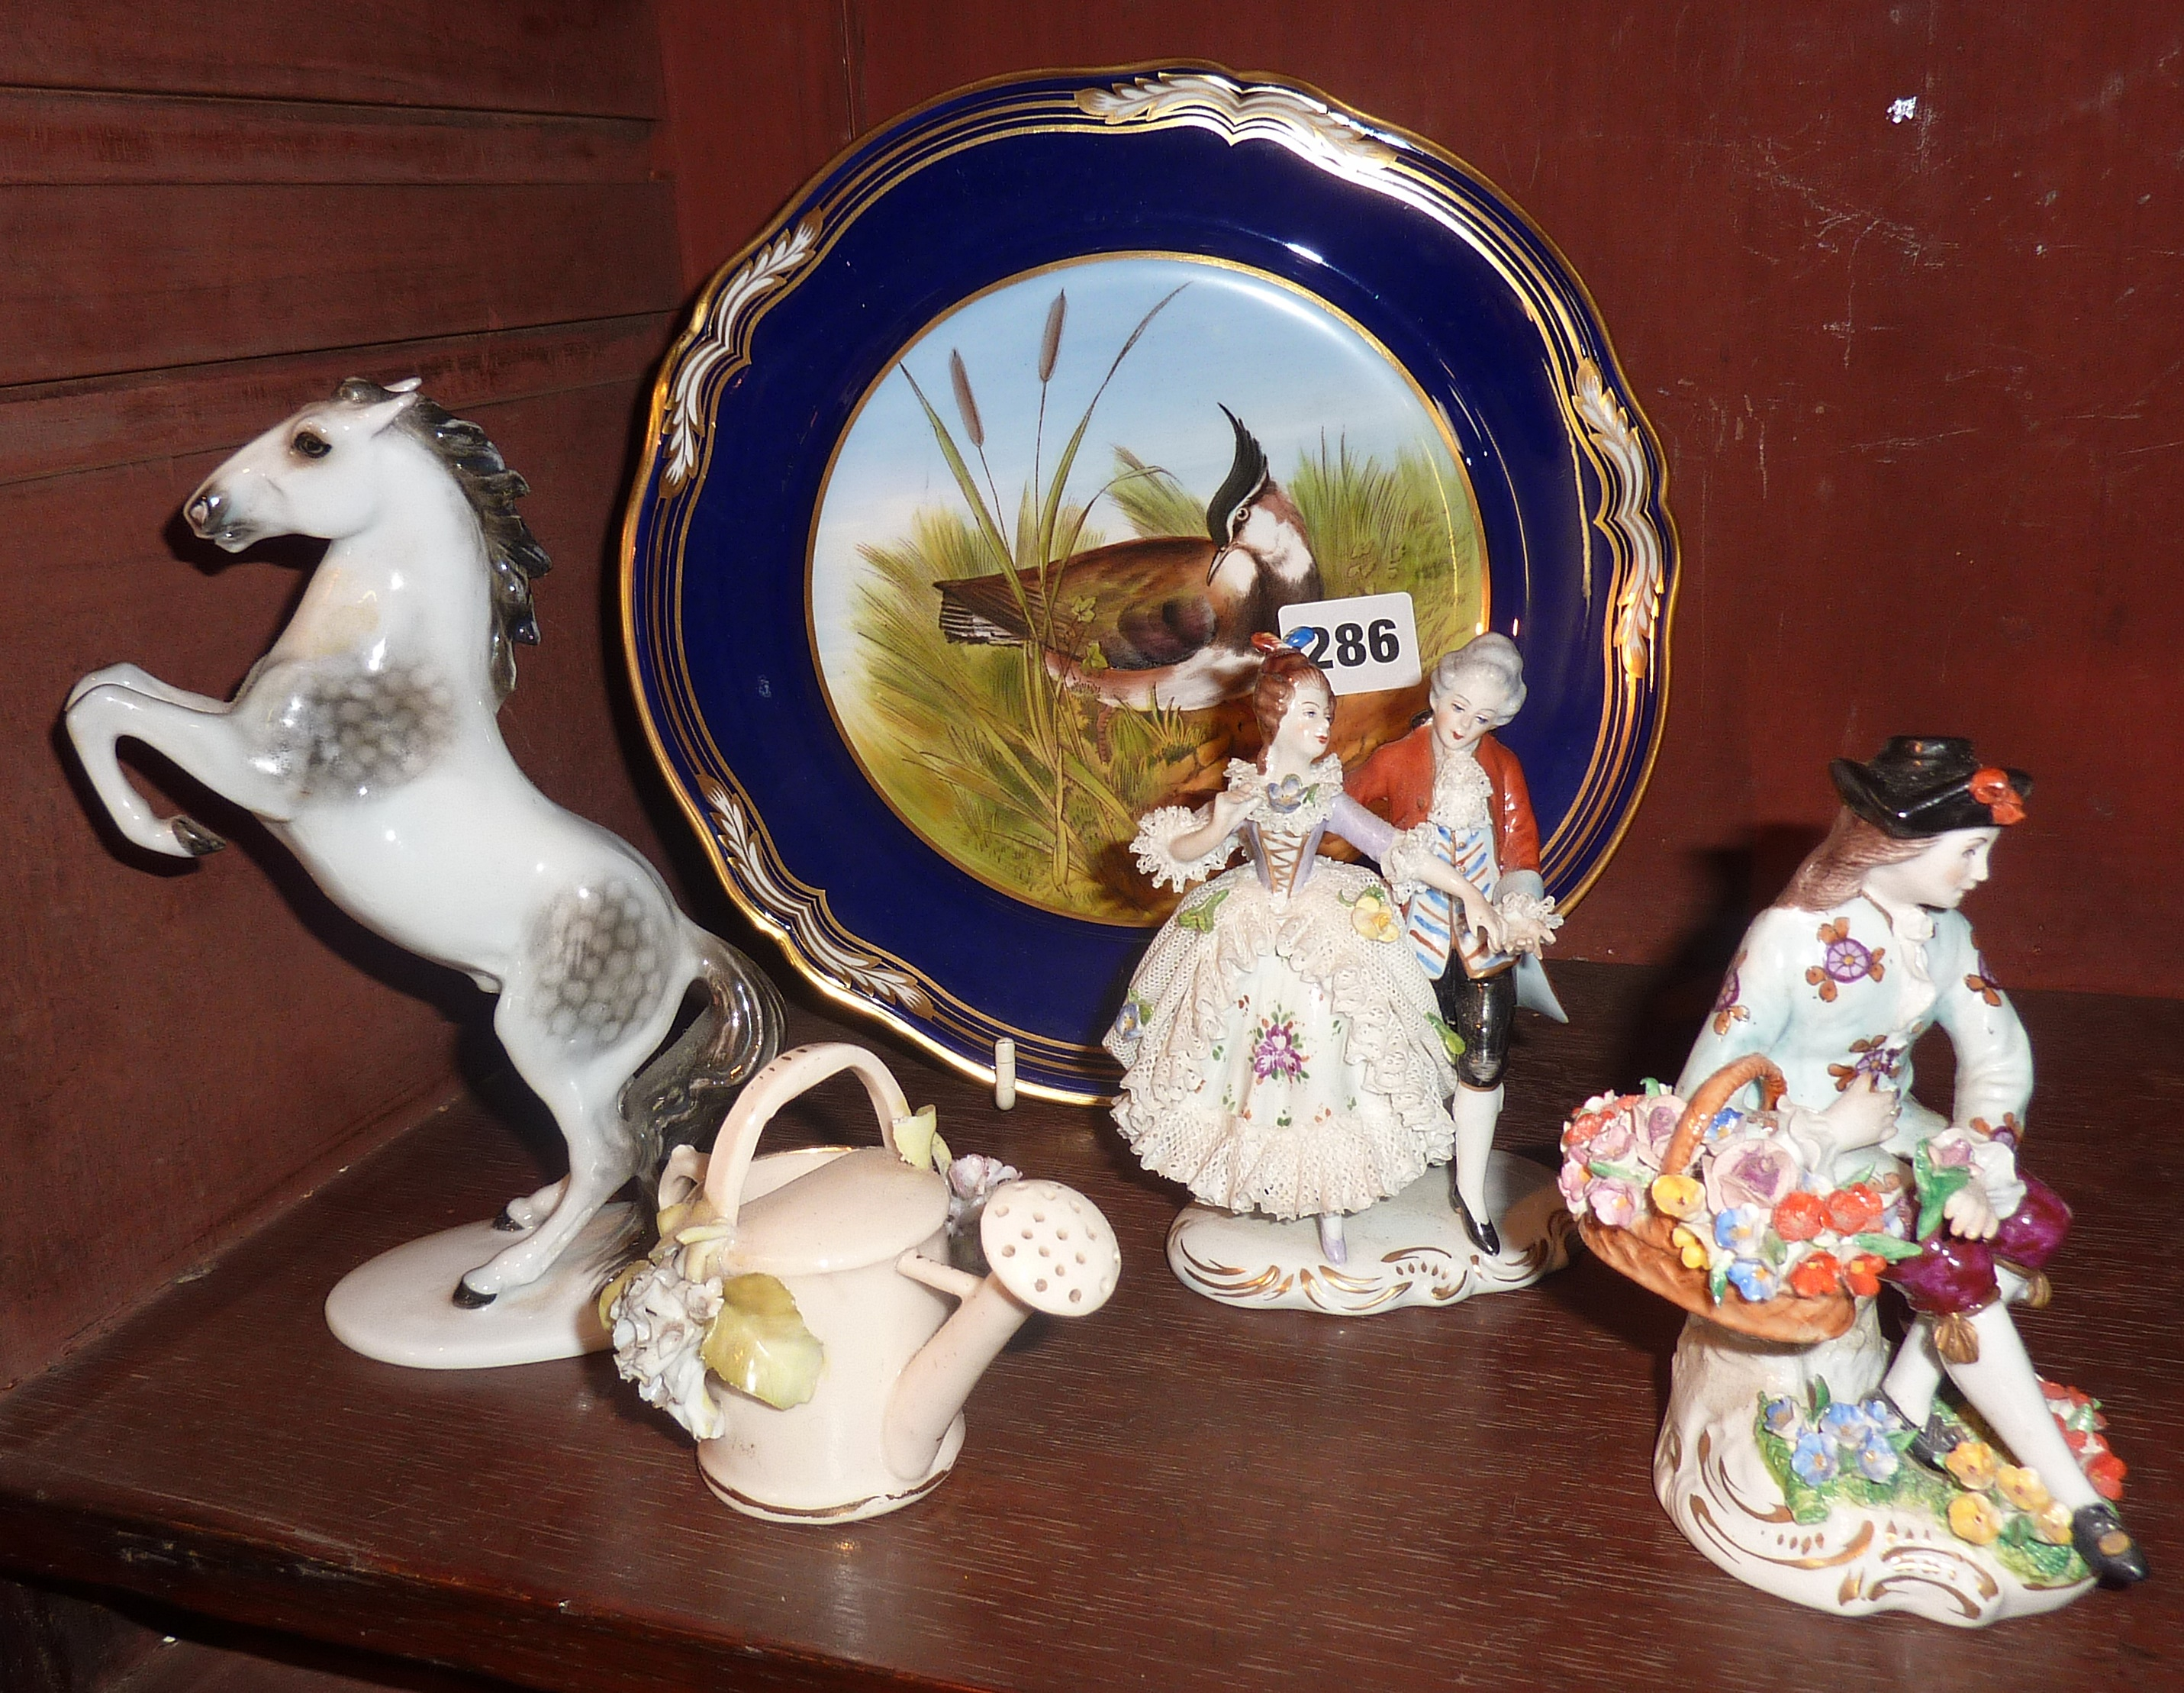 Lot 286 - Continental porcelain figures, bird plate, etc.